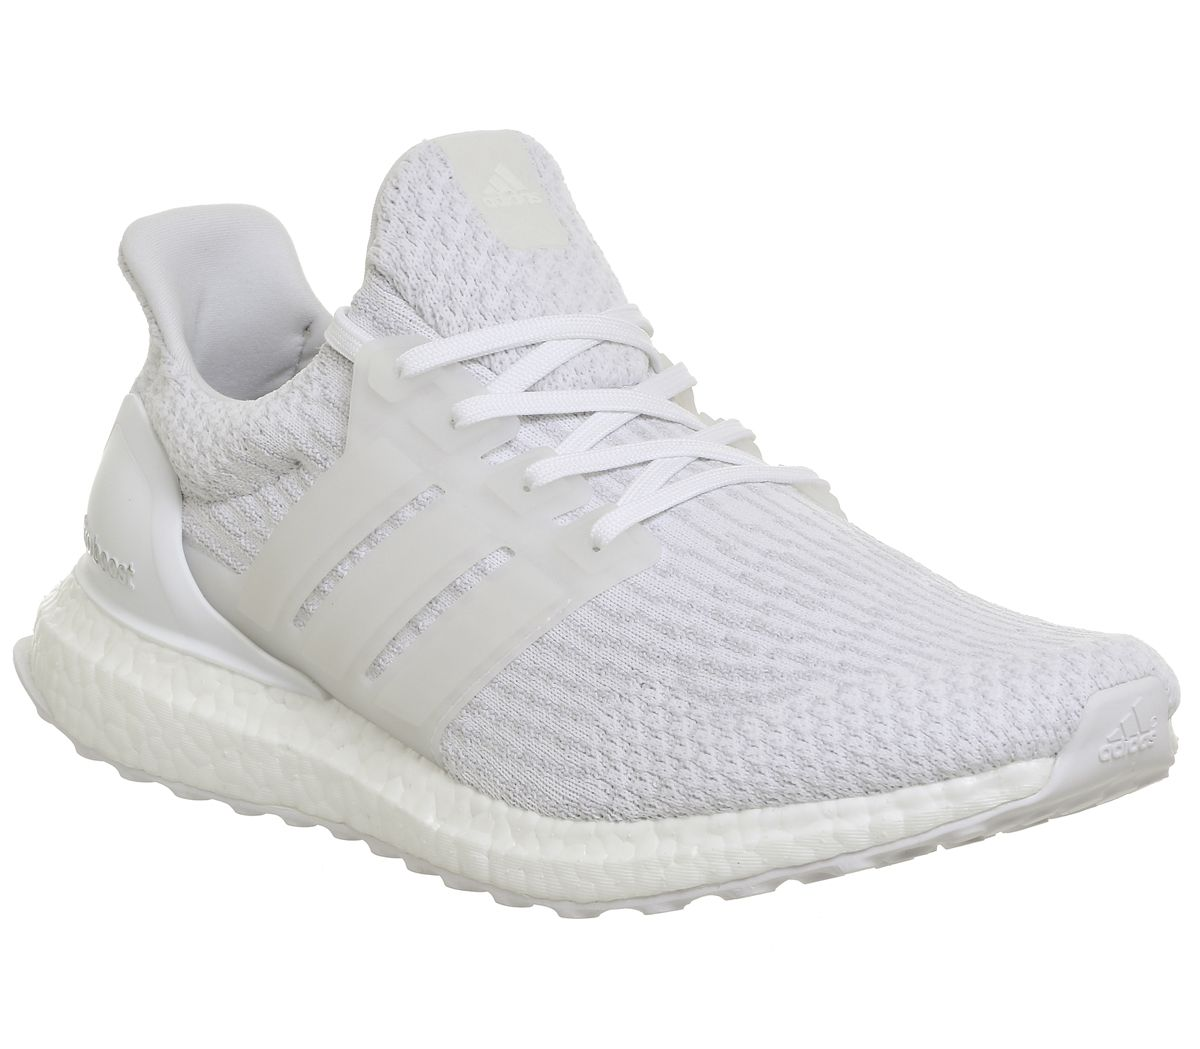 premium selection ab56a ea9f7 adidas Ultraboost Ultra Boost White White Mono - Unisex Sports